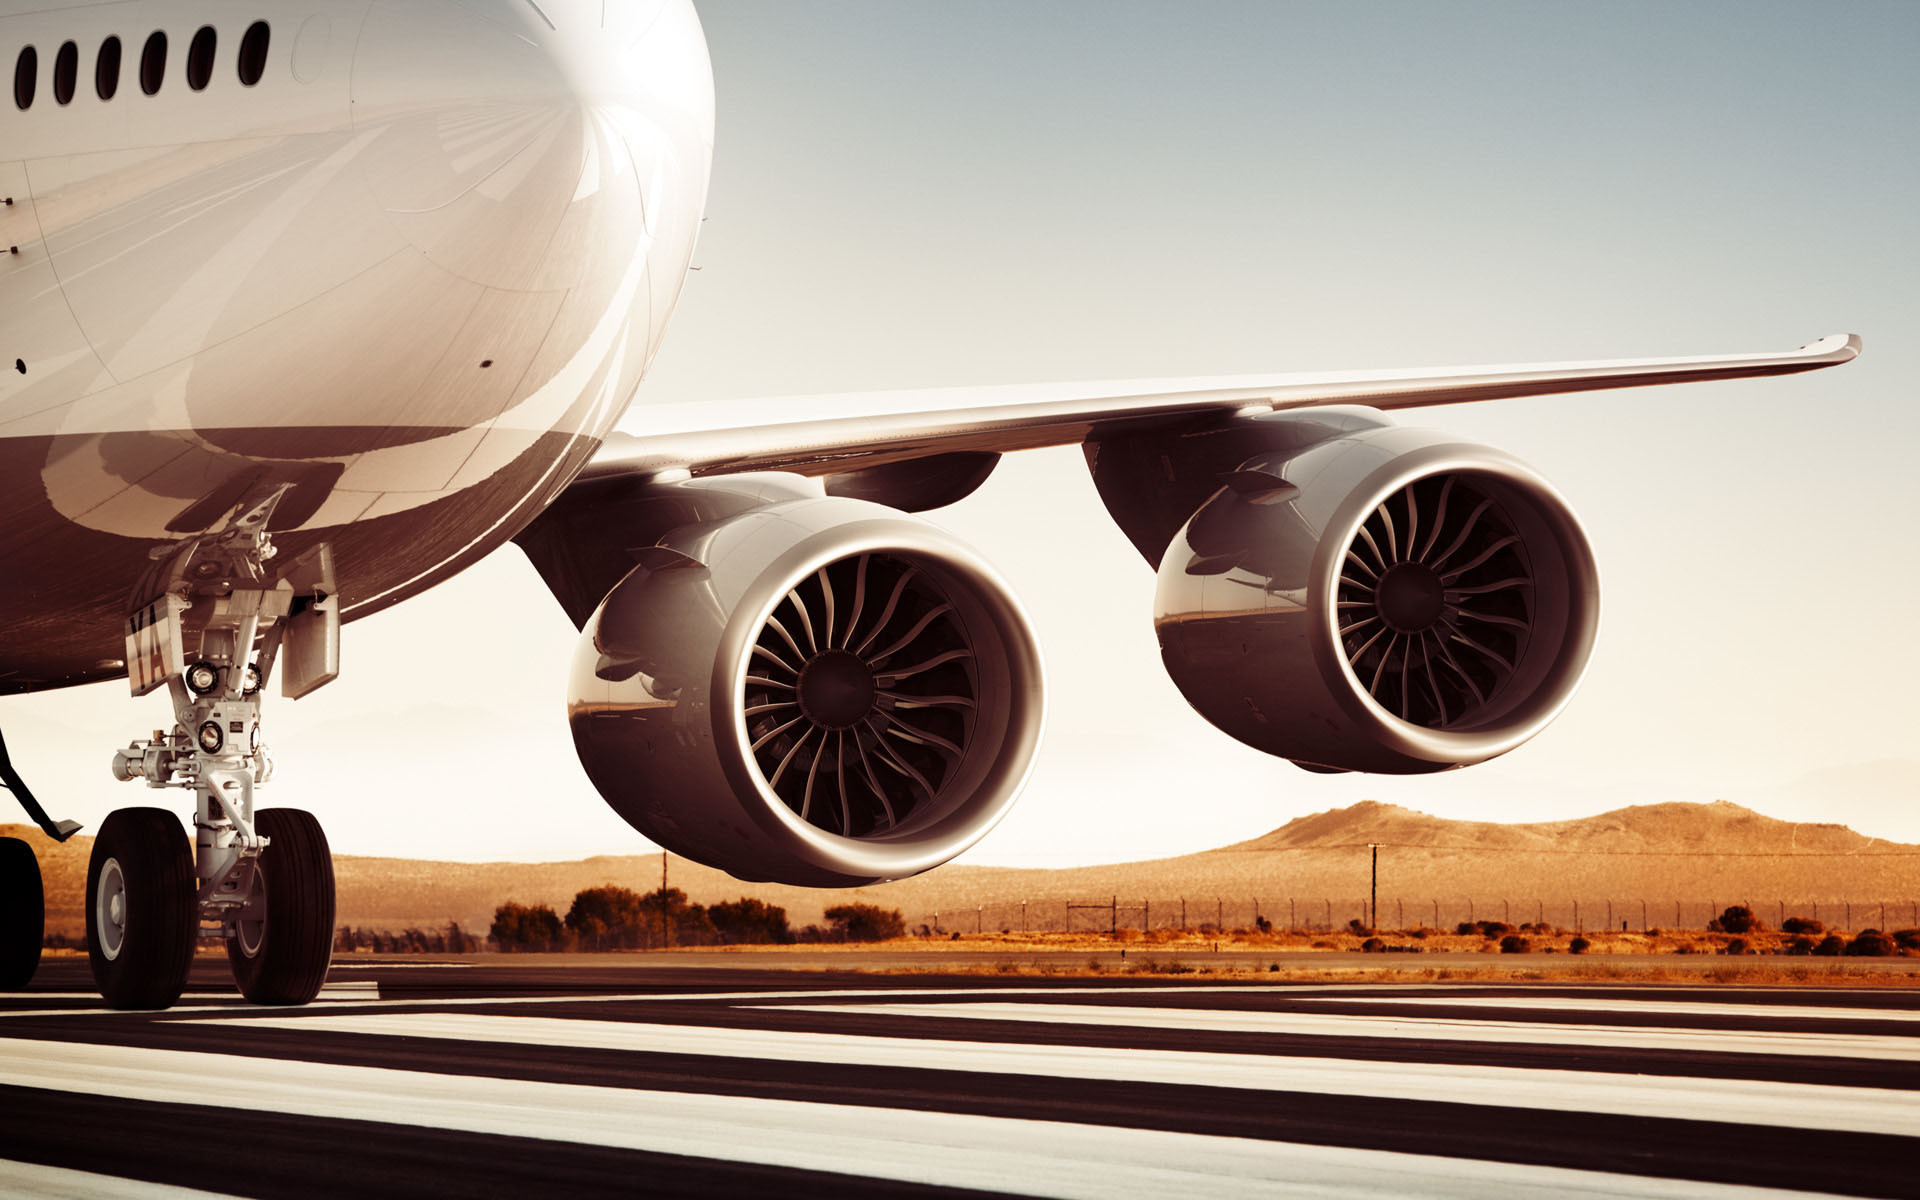 Boeing 747 wallpaper 74 images - Jet engine wallpaper ...